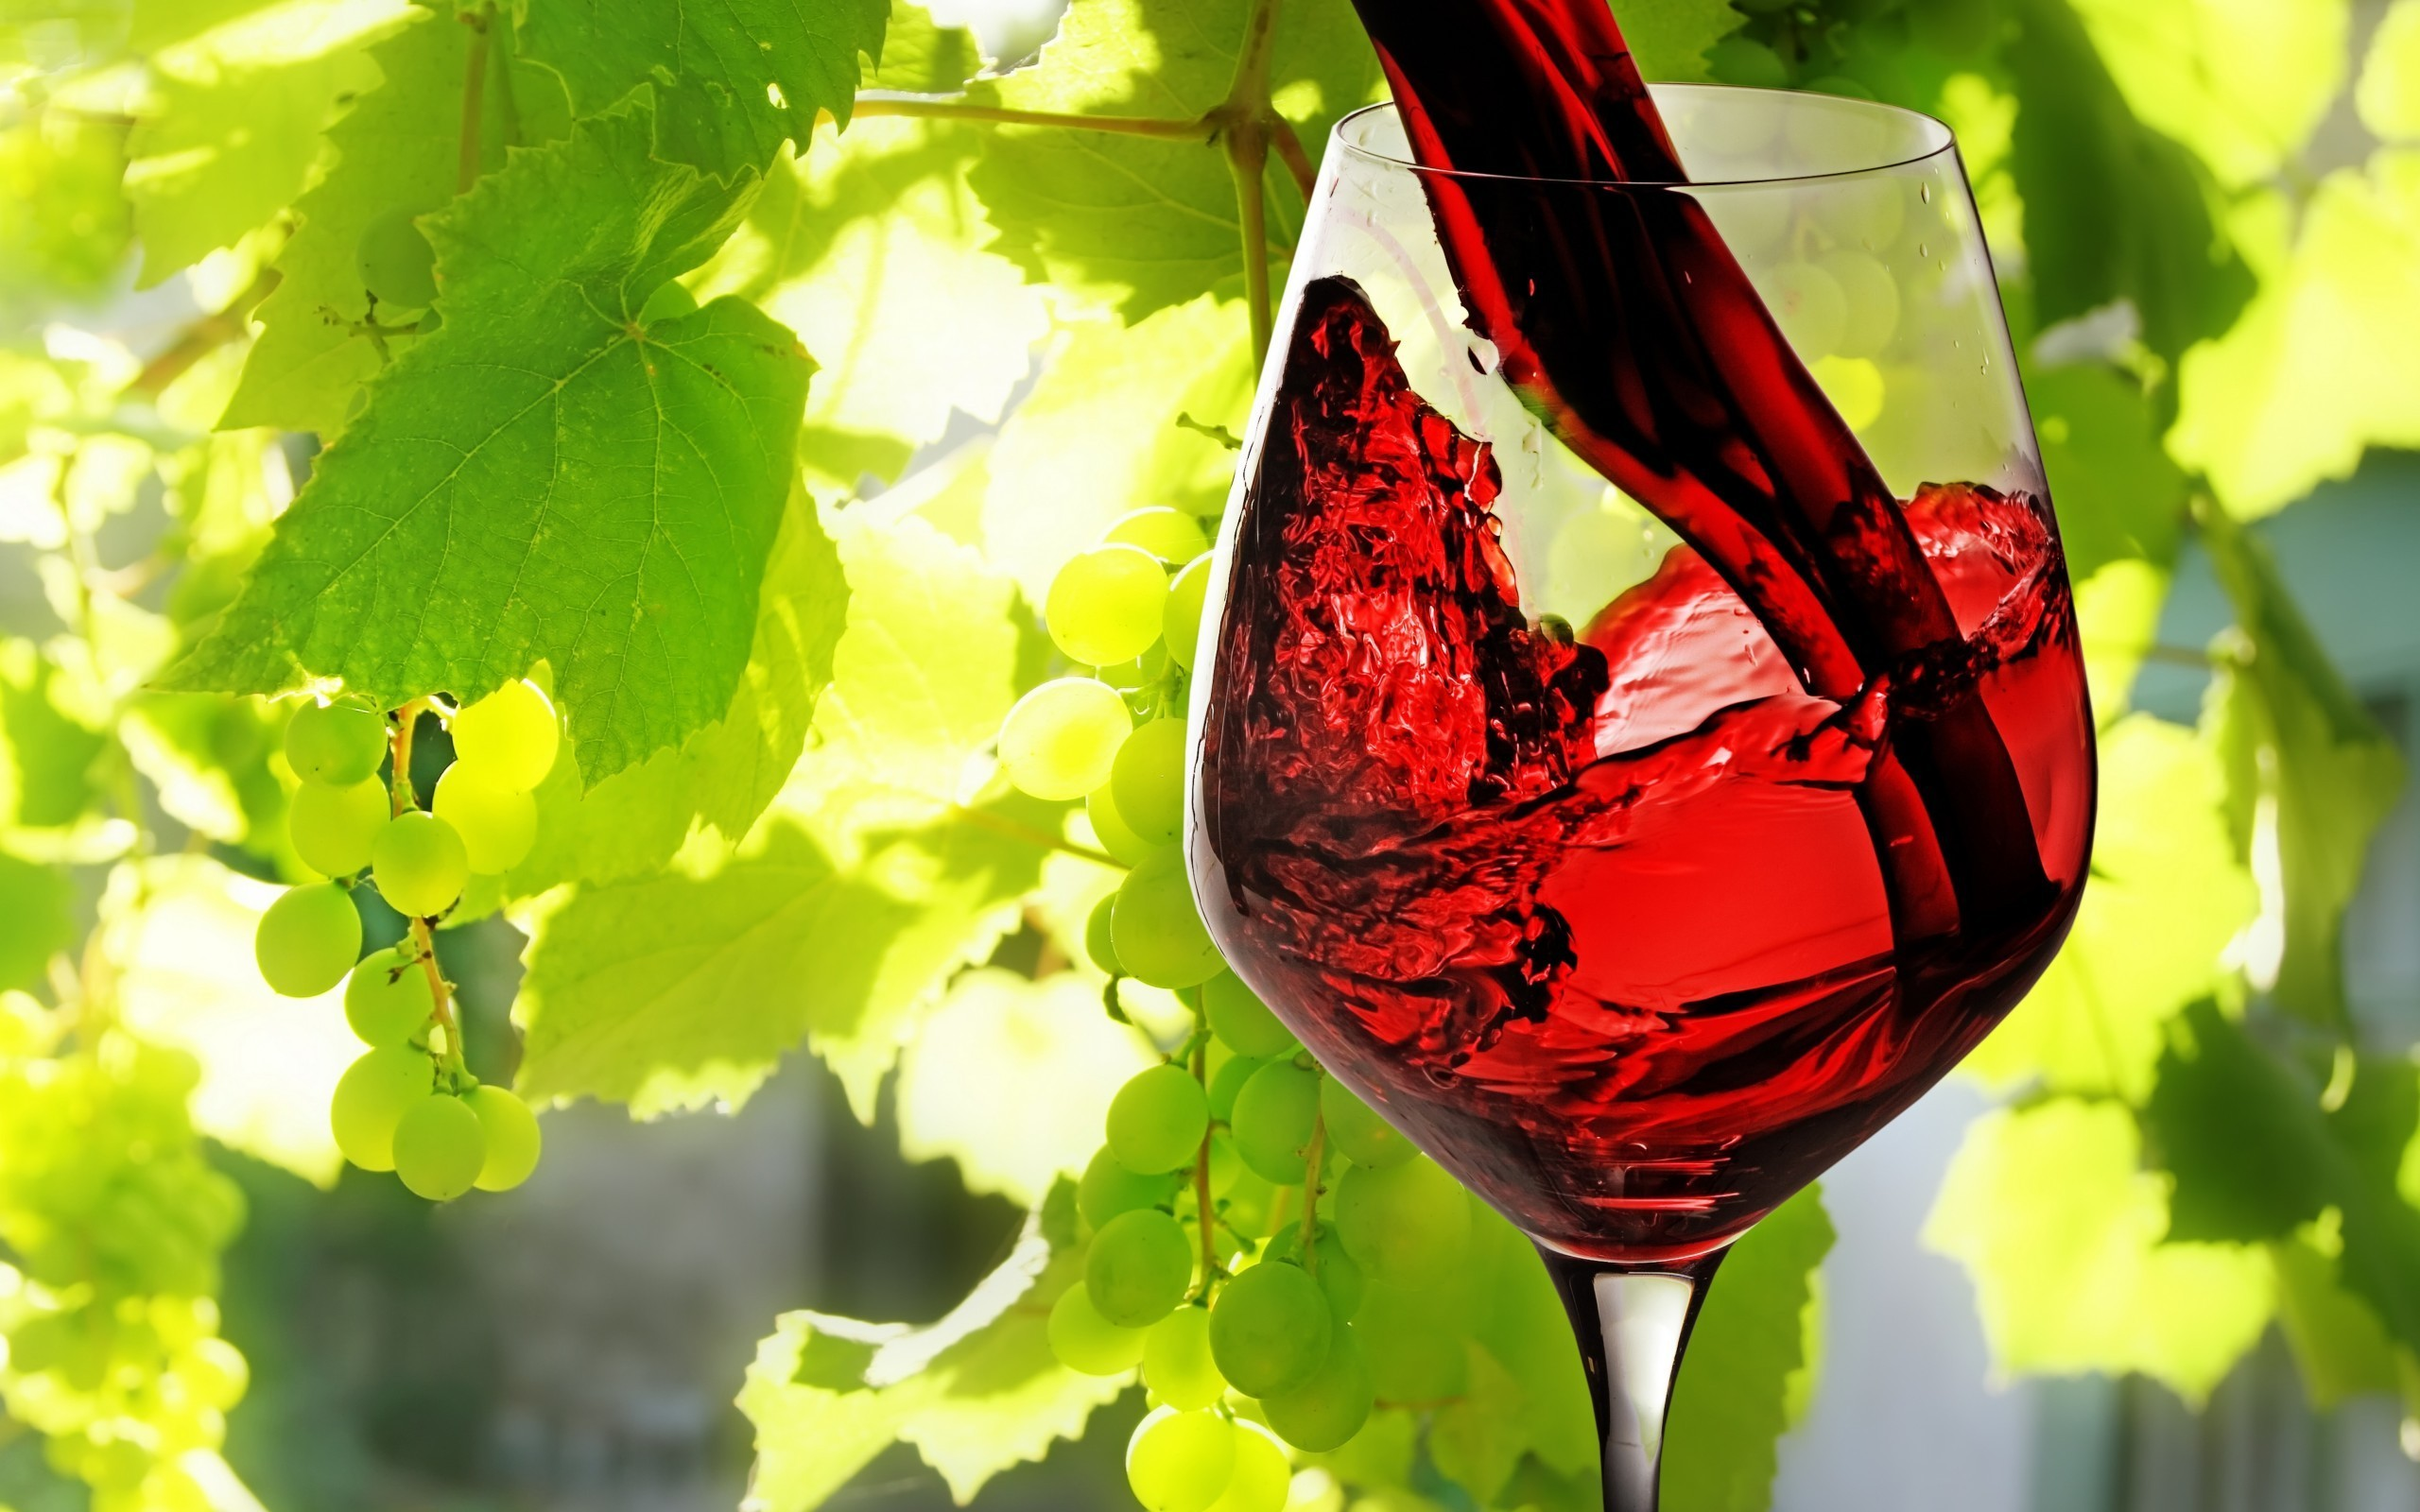 General 2560x1600 nature plants photography leaves vines grapes vine leaves macro wine drinking glass sunlight alcohol